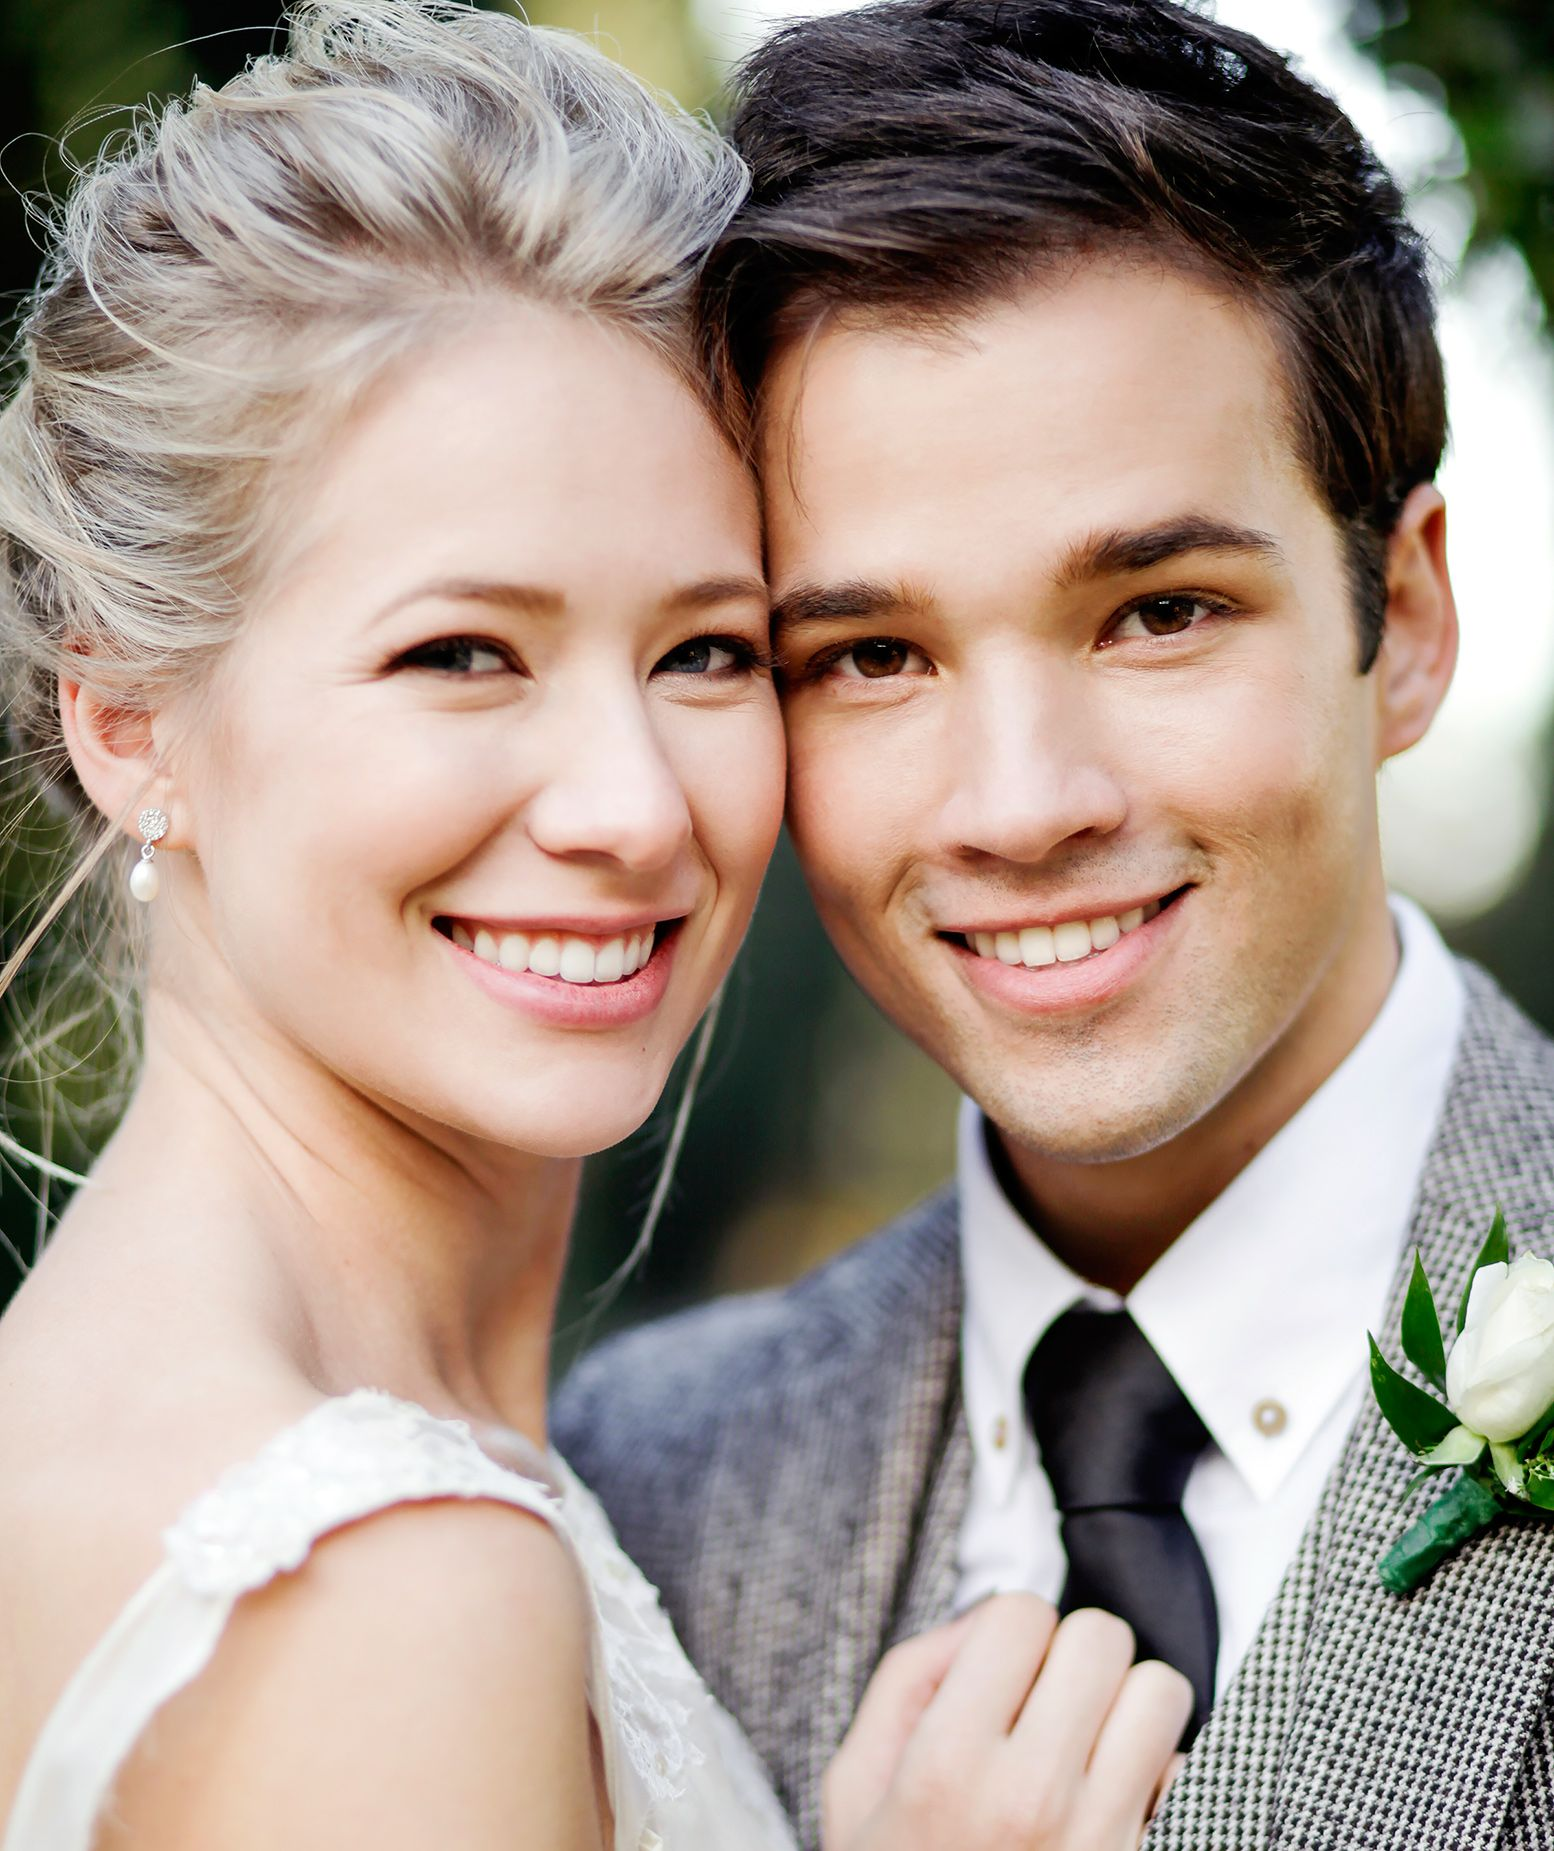 London Elise Moore And Nathan Kress Wedding Pictures 2015 Nathan Kress Wedding Celebrities Celebrity Trends